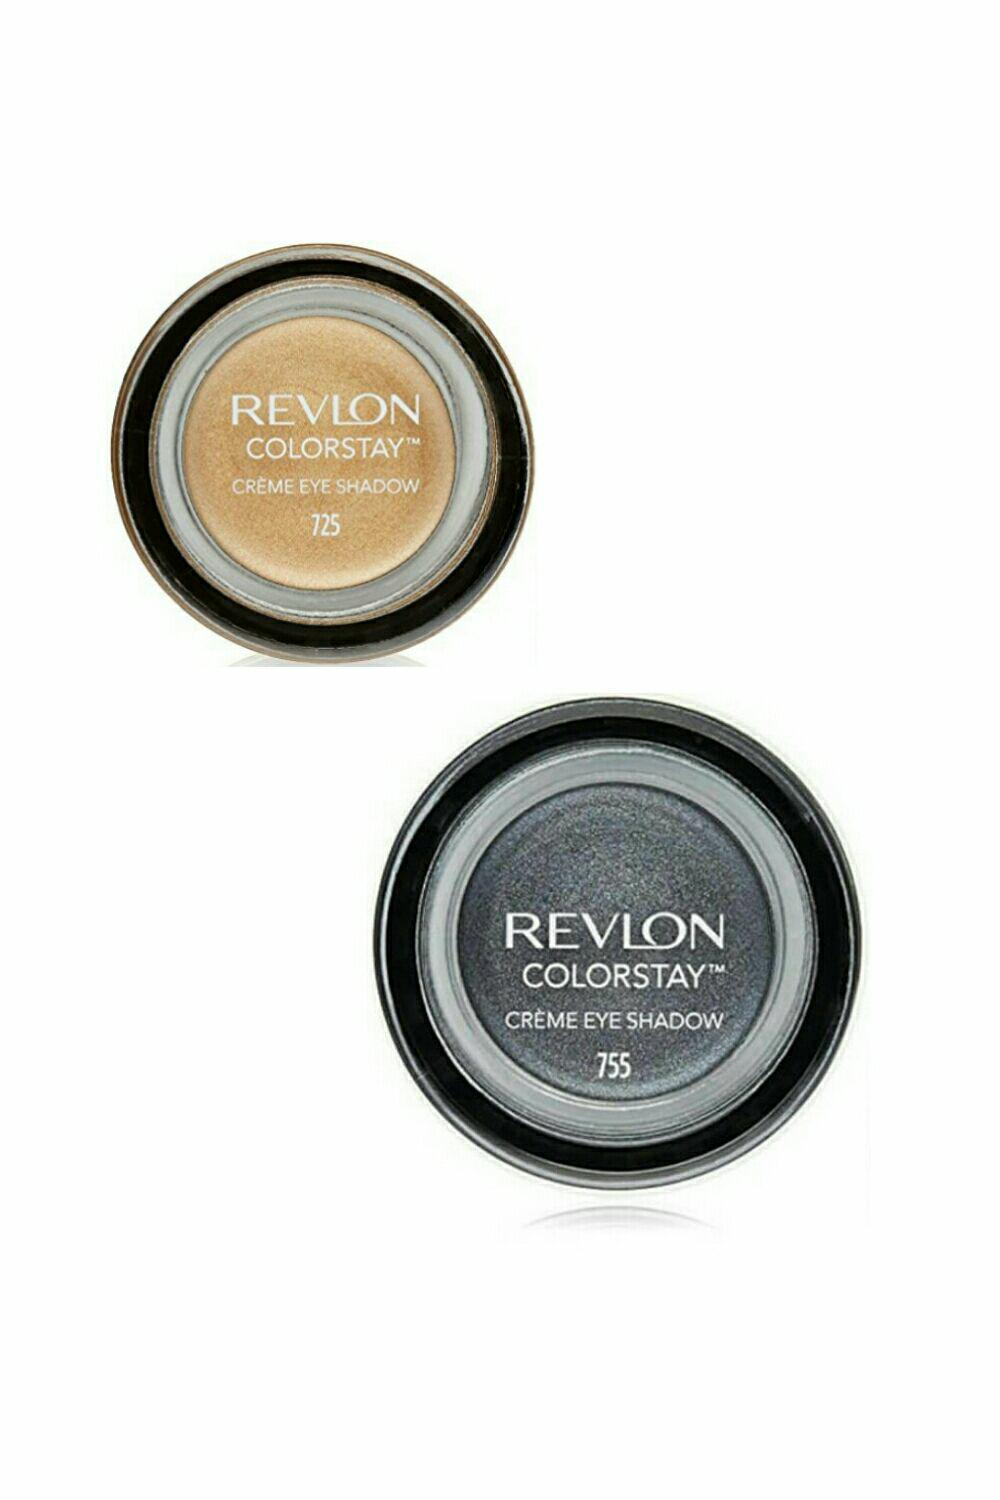 Revlon New Complexion Two Way Foundation Honey Beige Daftar Harga Source · REVLON COLORSTAY CREME EYE